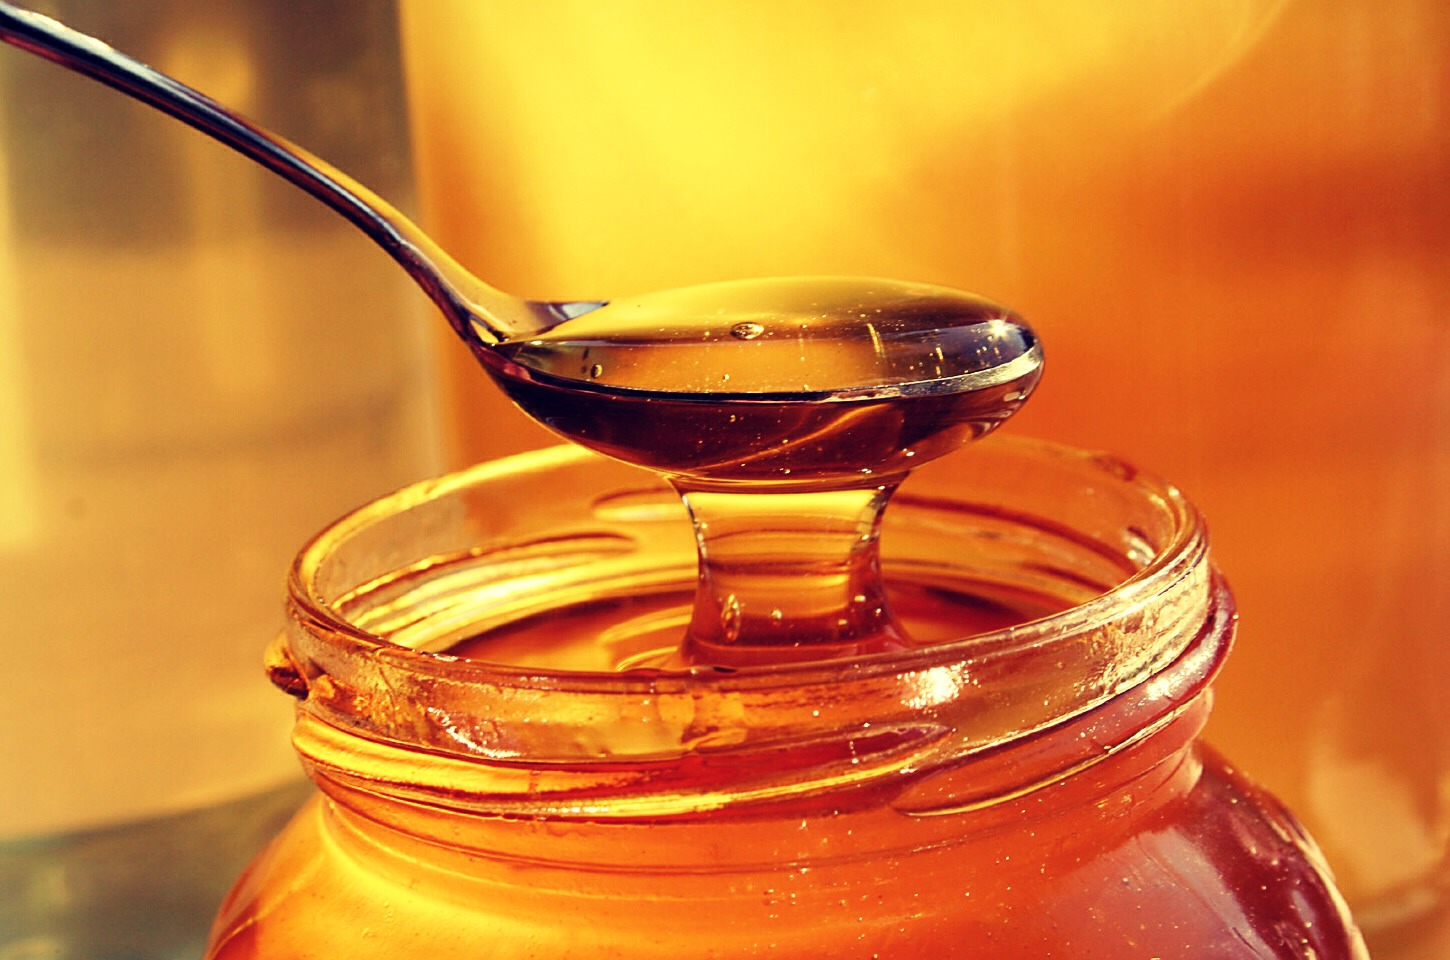 Manuka honey is the best as it is medicinal and not as sticky but any honey works. Something in it's compound